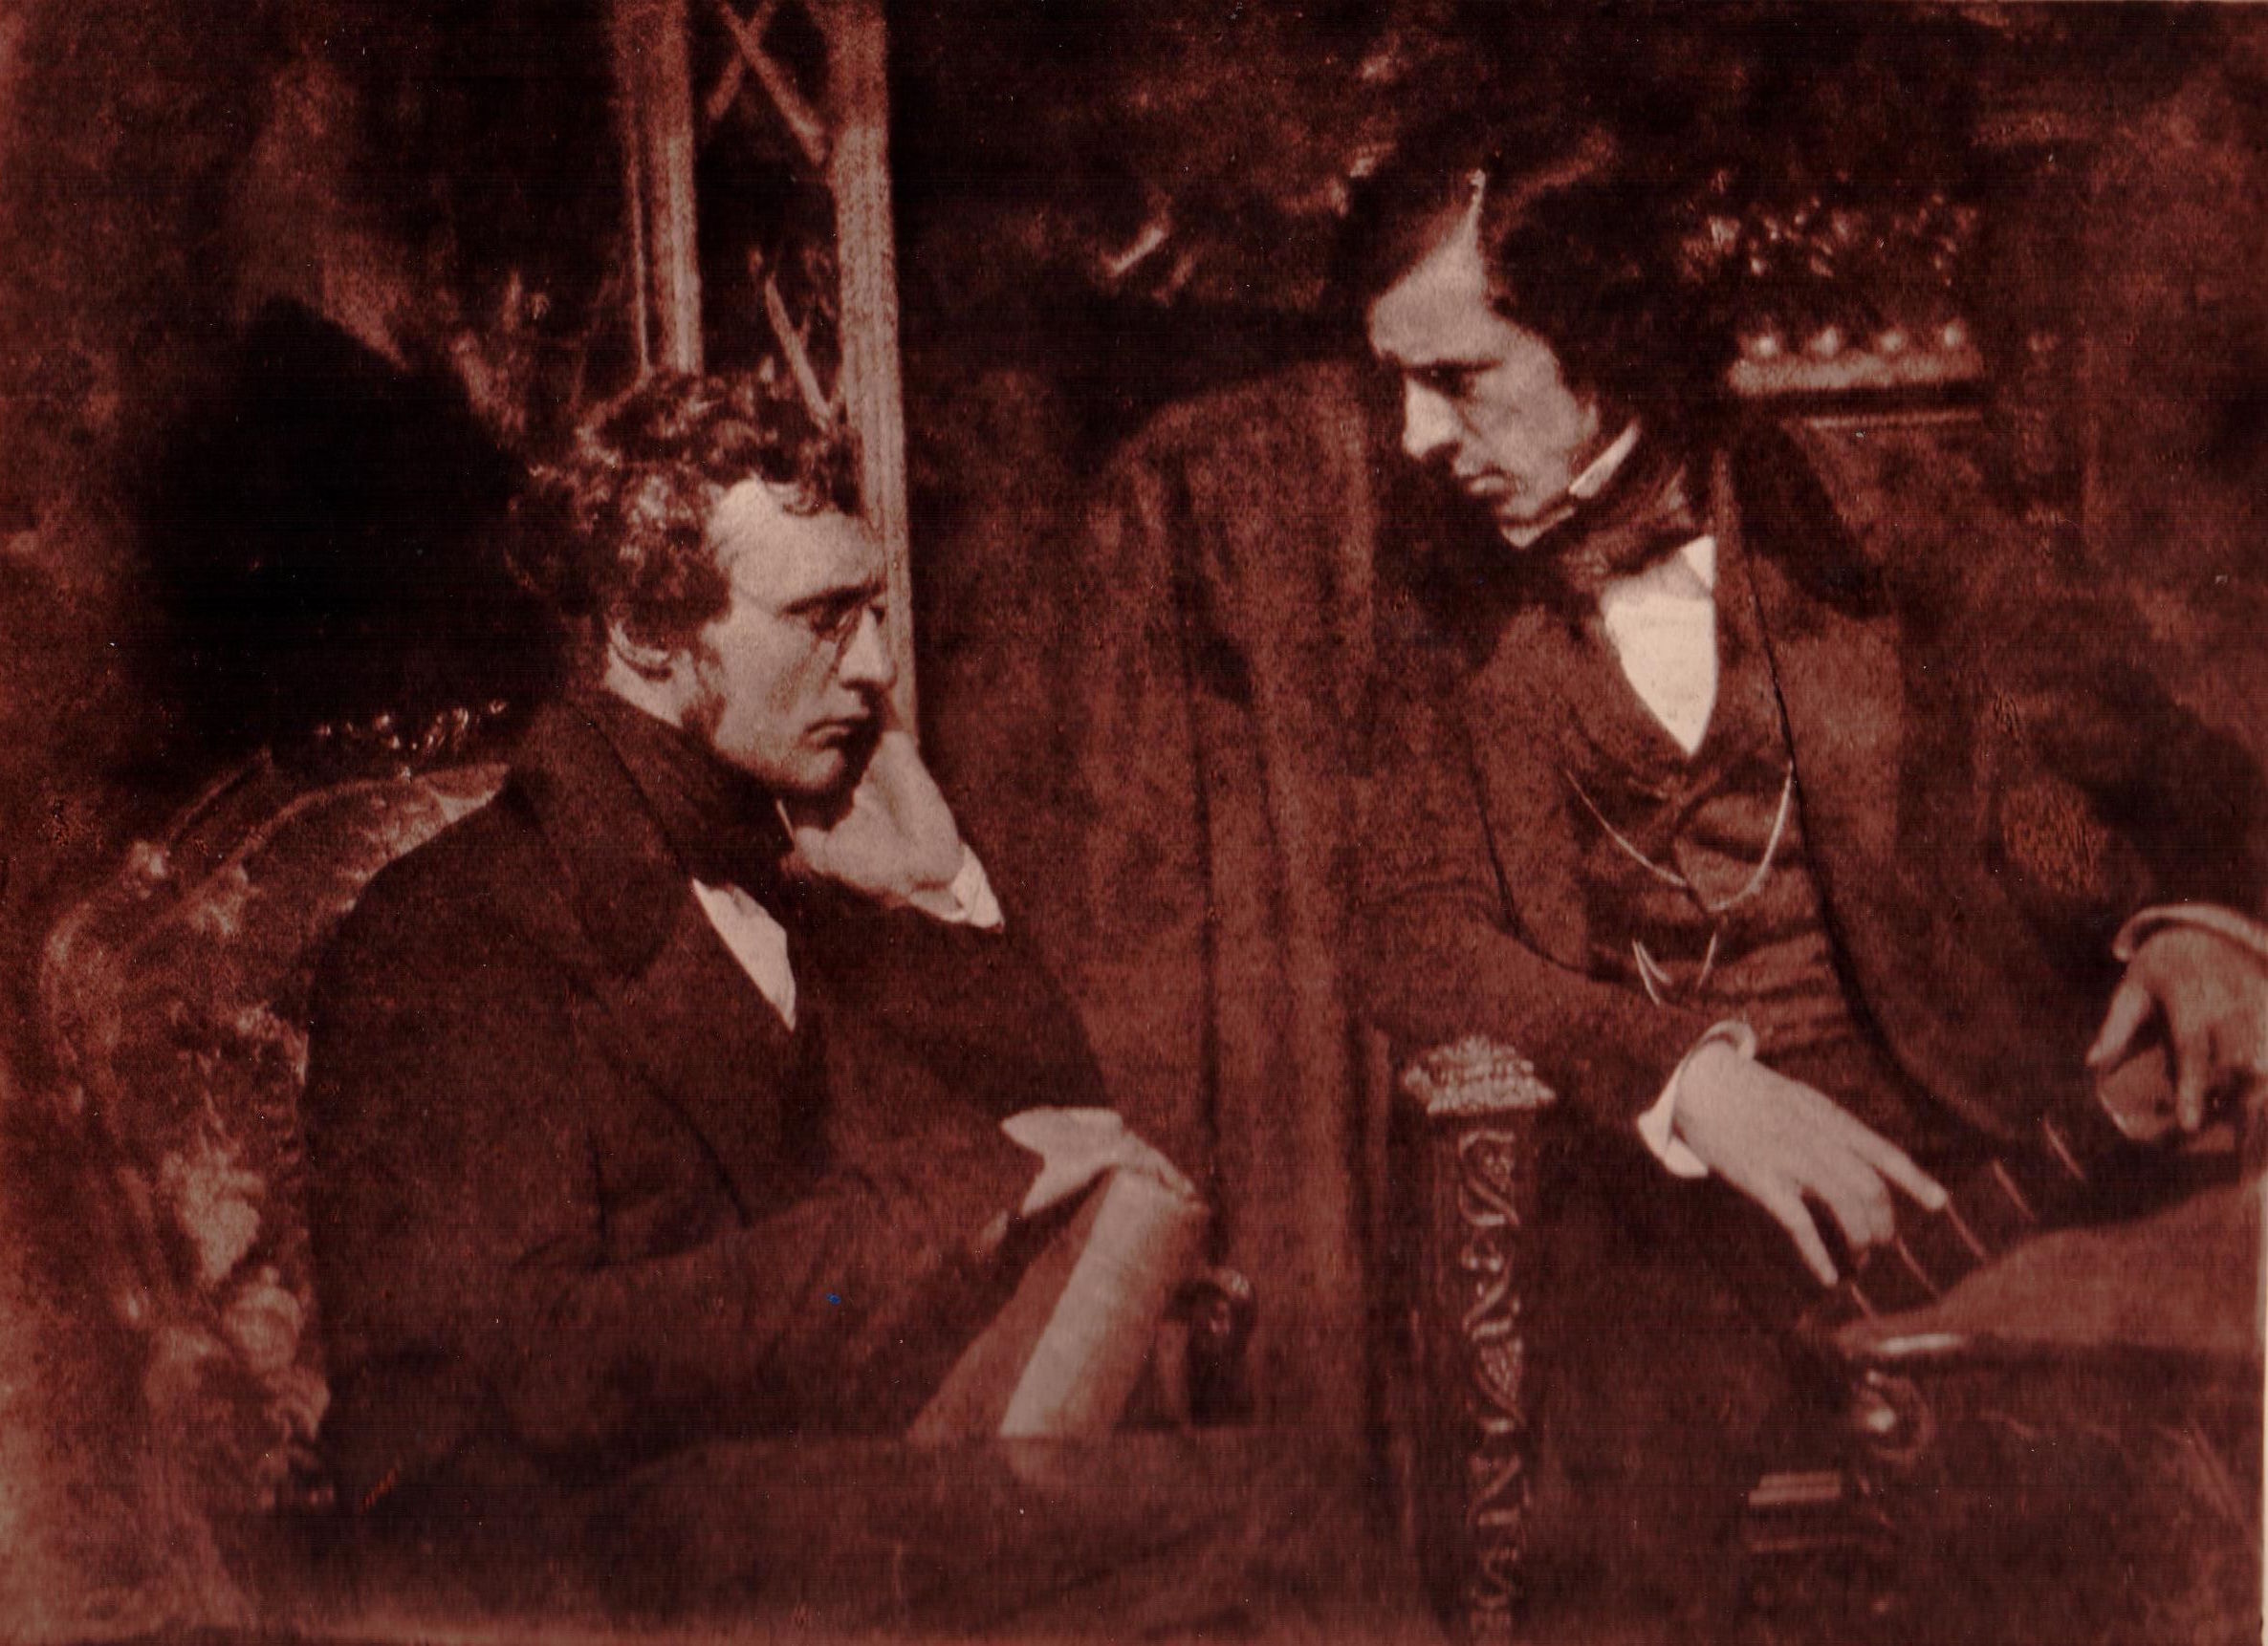 Dr Samuel Brown and the Rev George Gilfillan, by Hill and Adamson, Carbon Print by Annan Studio from the original Hill and Adamson negative, c 1890. Courtesy London Photograph Fair 4 March 2018